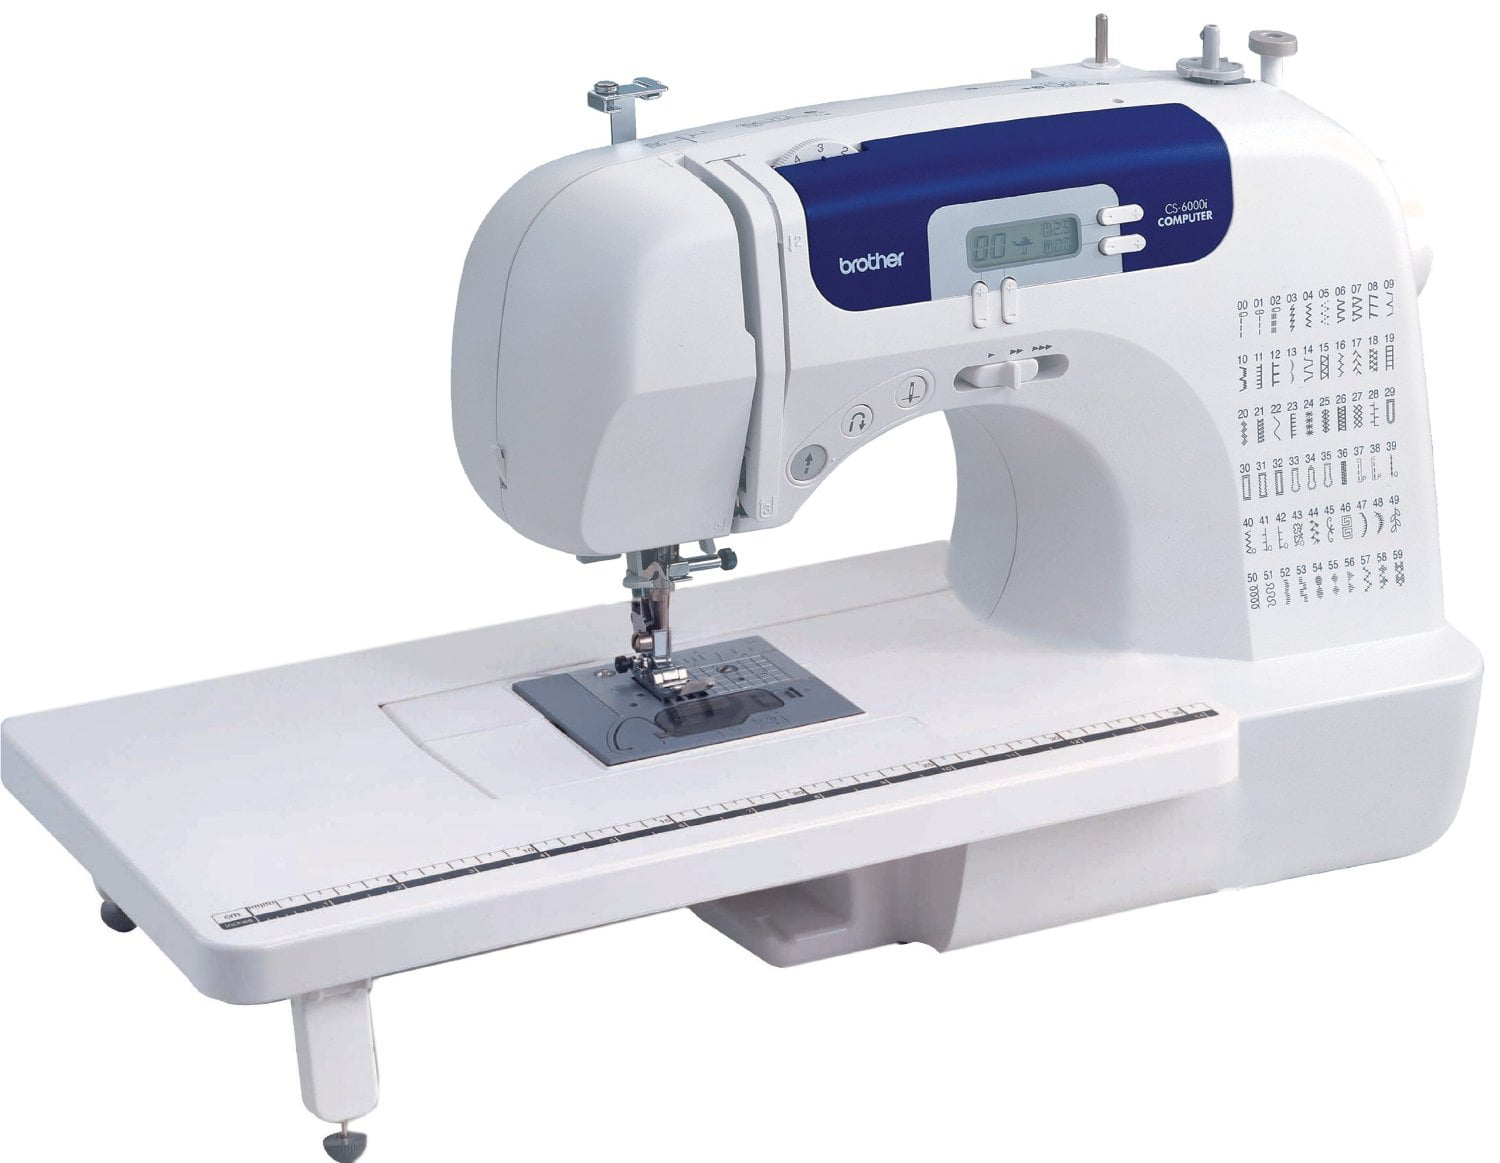 Macintosh HD:Users:chaffee3:Desktop:Brother-CS6000i-Sewing-Machine-Review_3.jpg